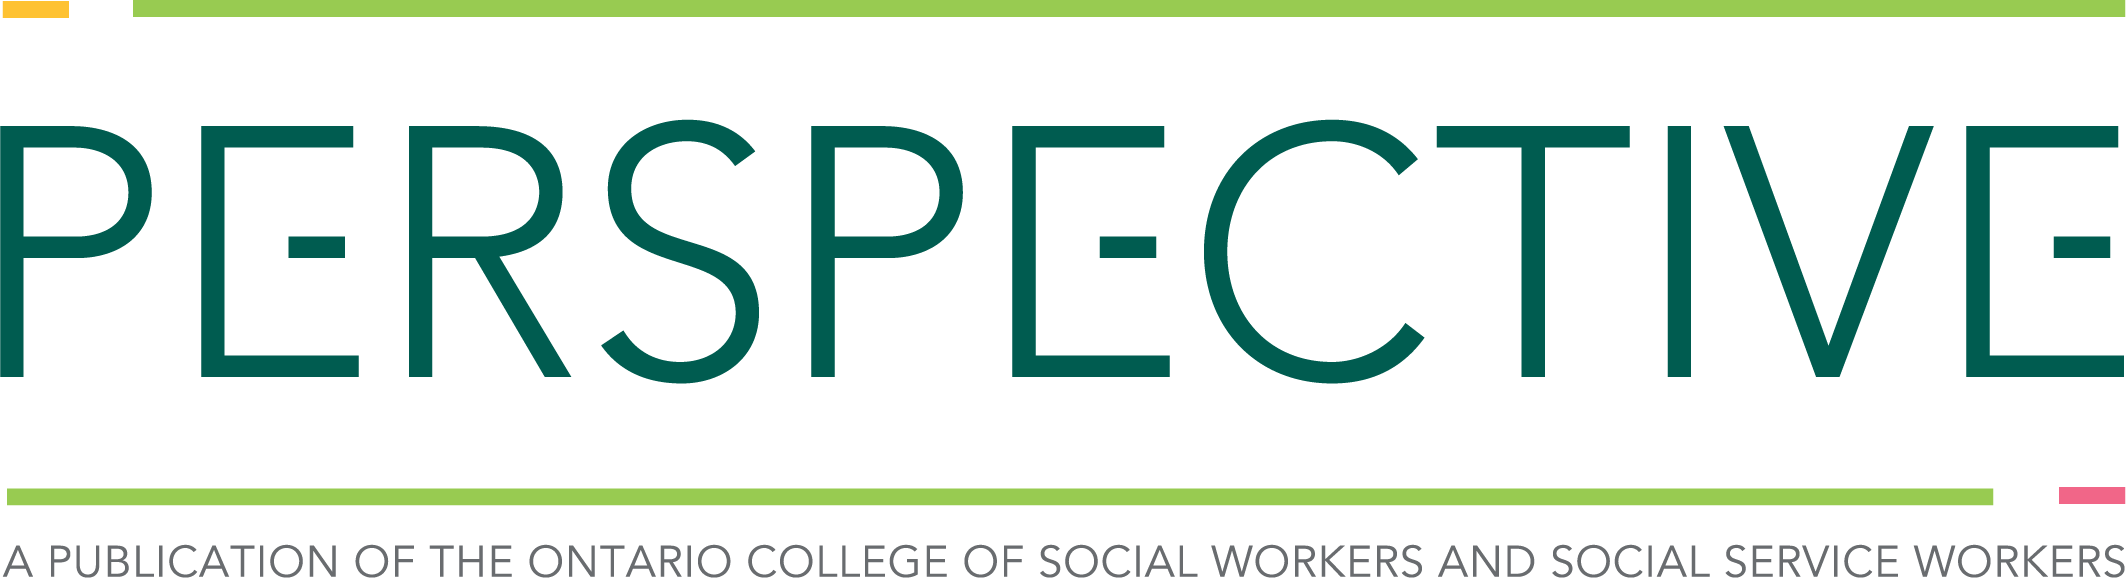 Perspective - A Publication of the Ontario College of Social